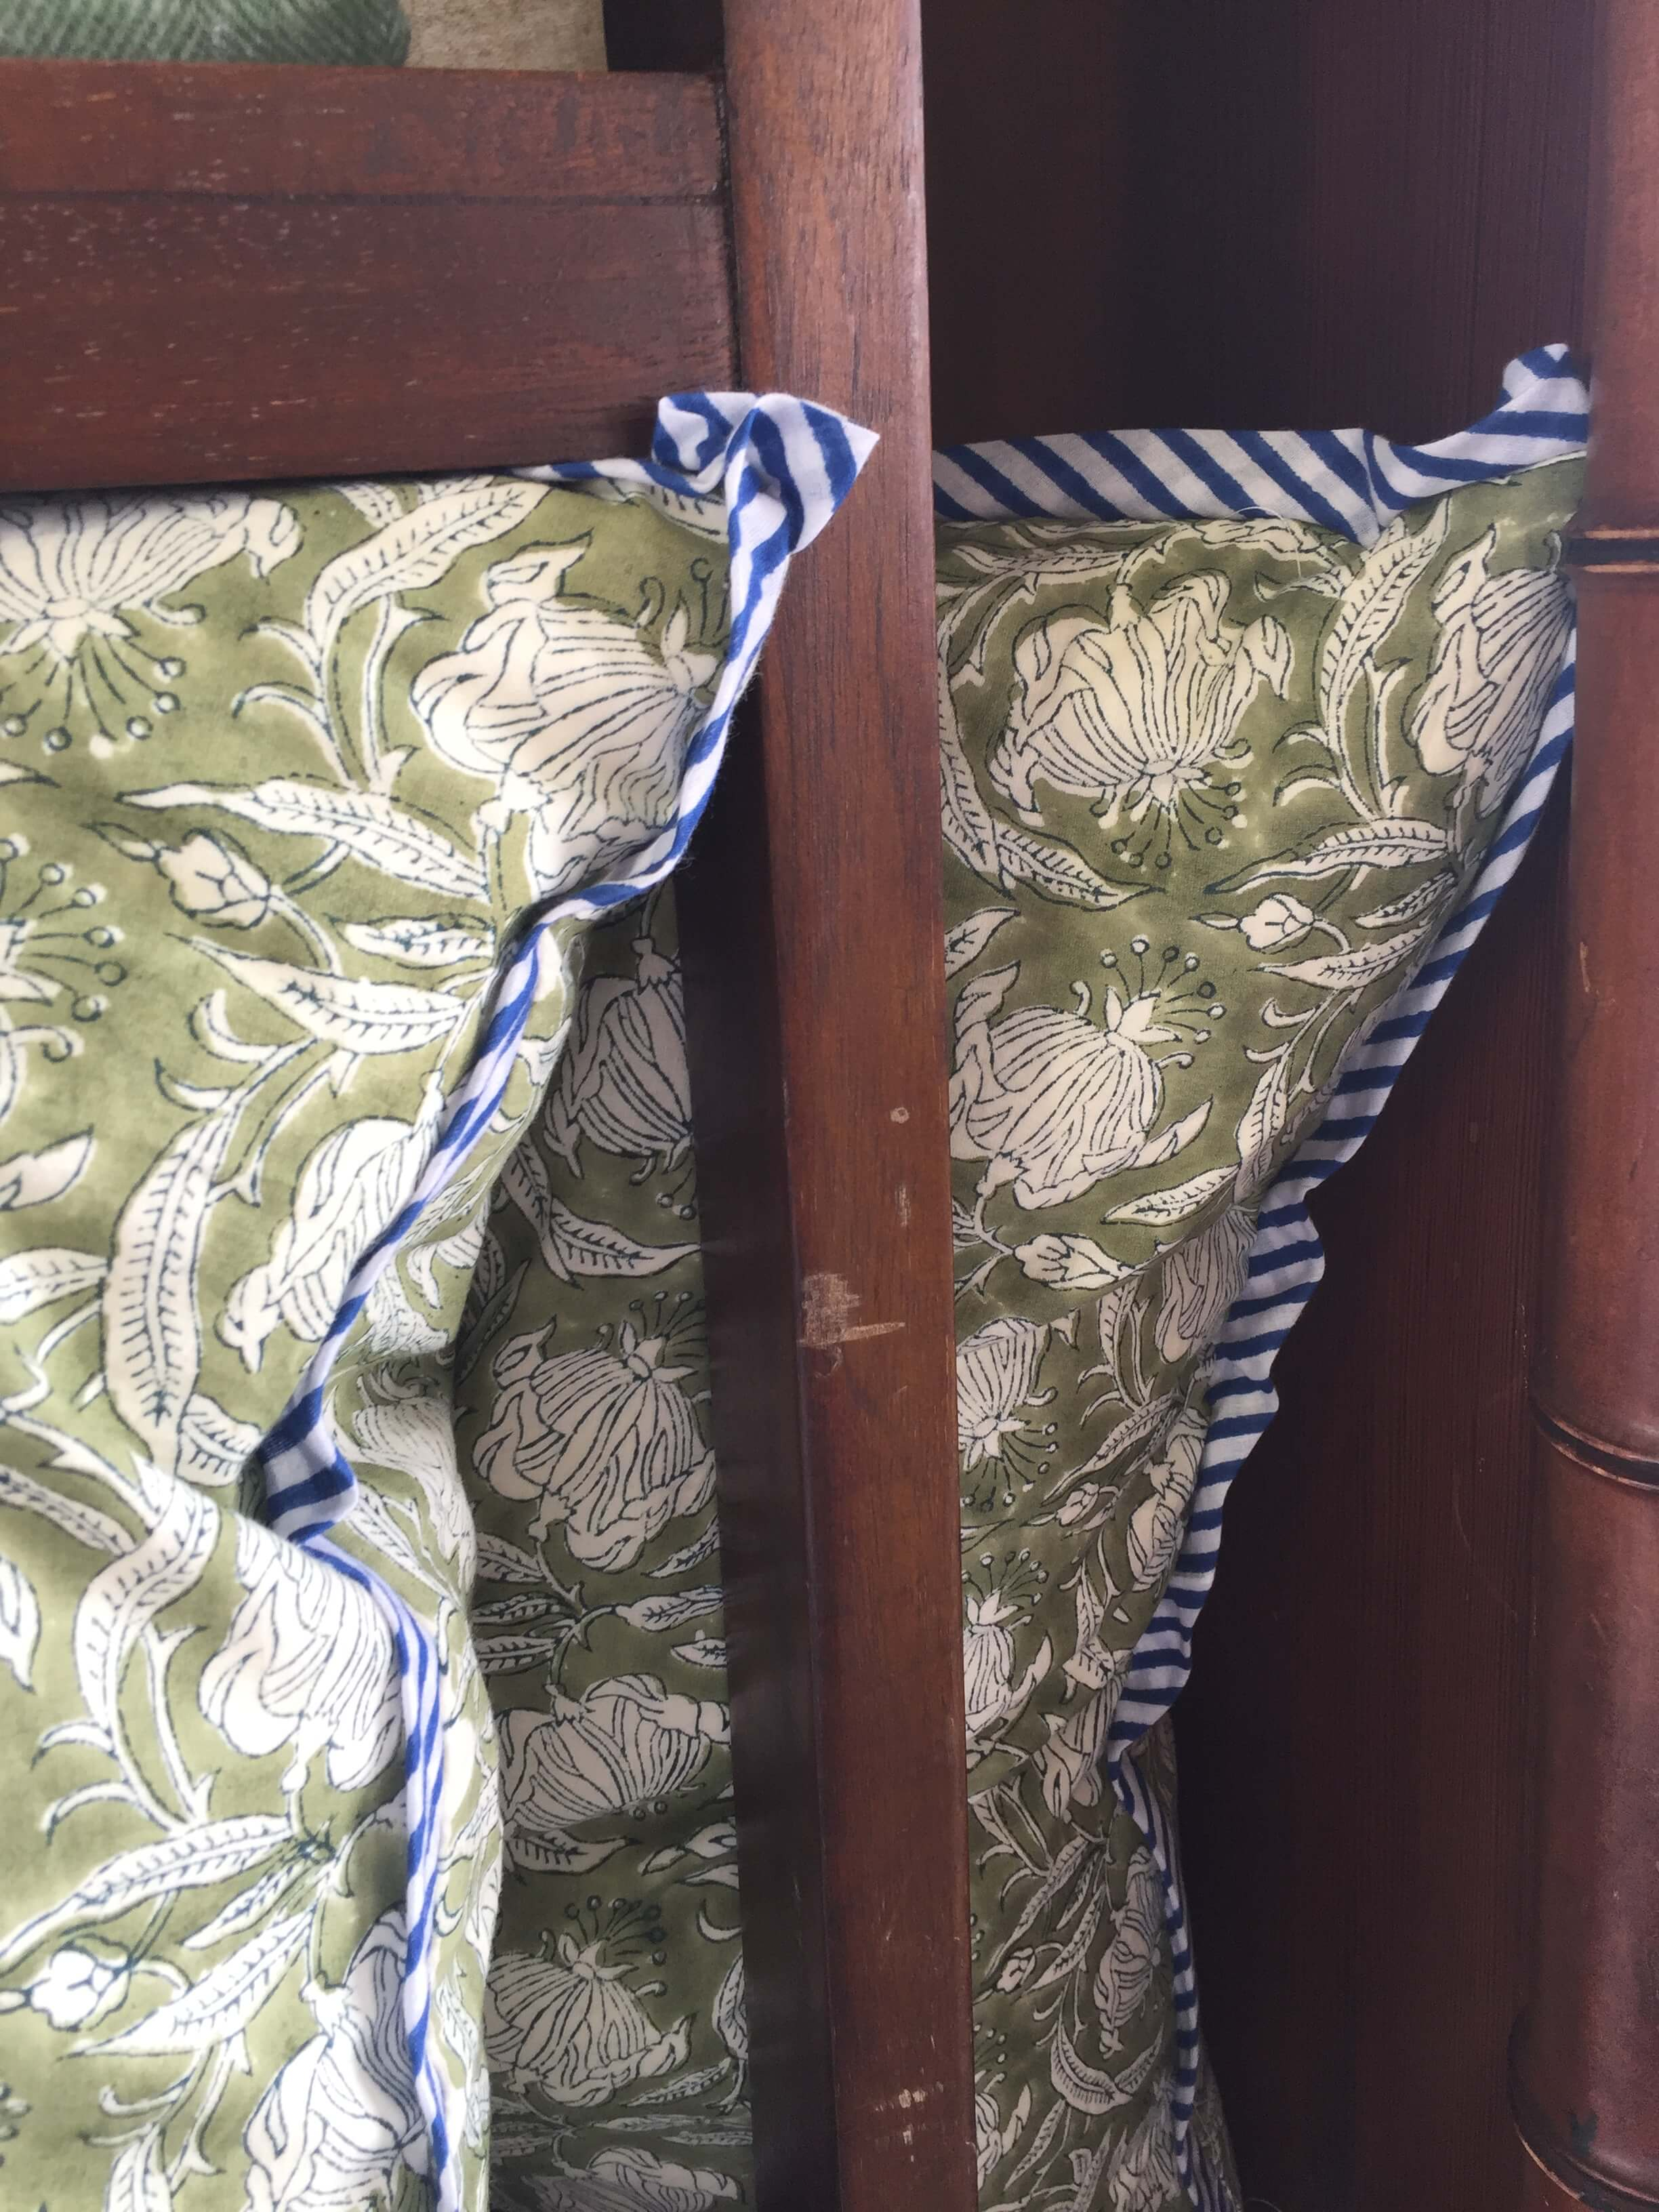 Cotton print textiles made into pillows with flange details seen at Round Top, TX at Arbor Antiques from Mela and Roam #pillows #antiques #roundtop #textiles